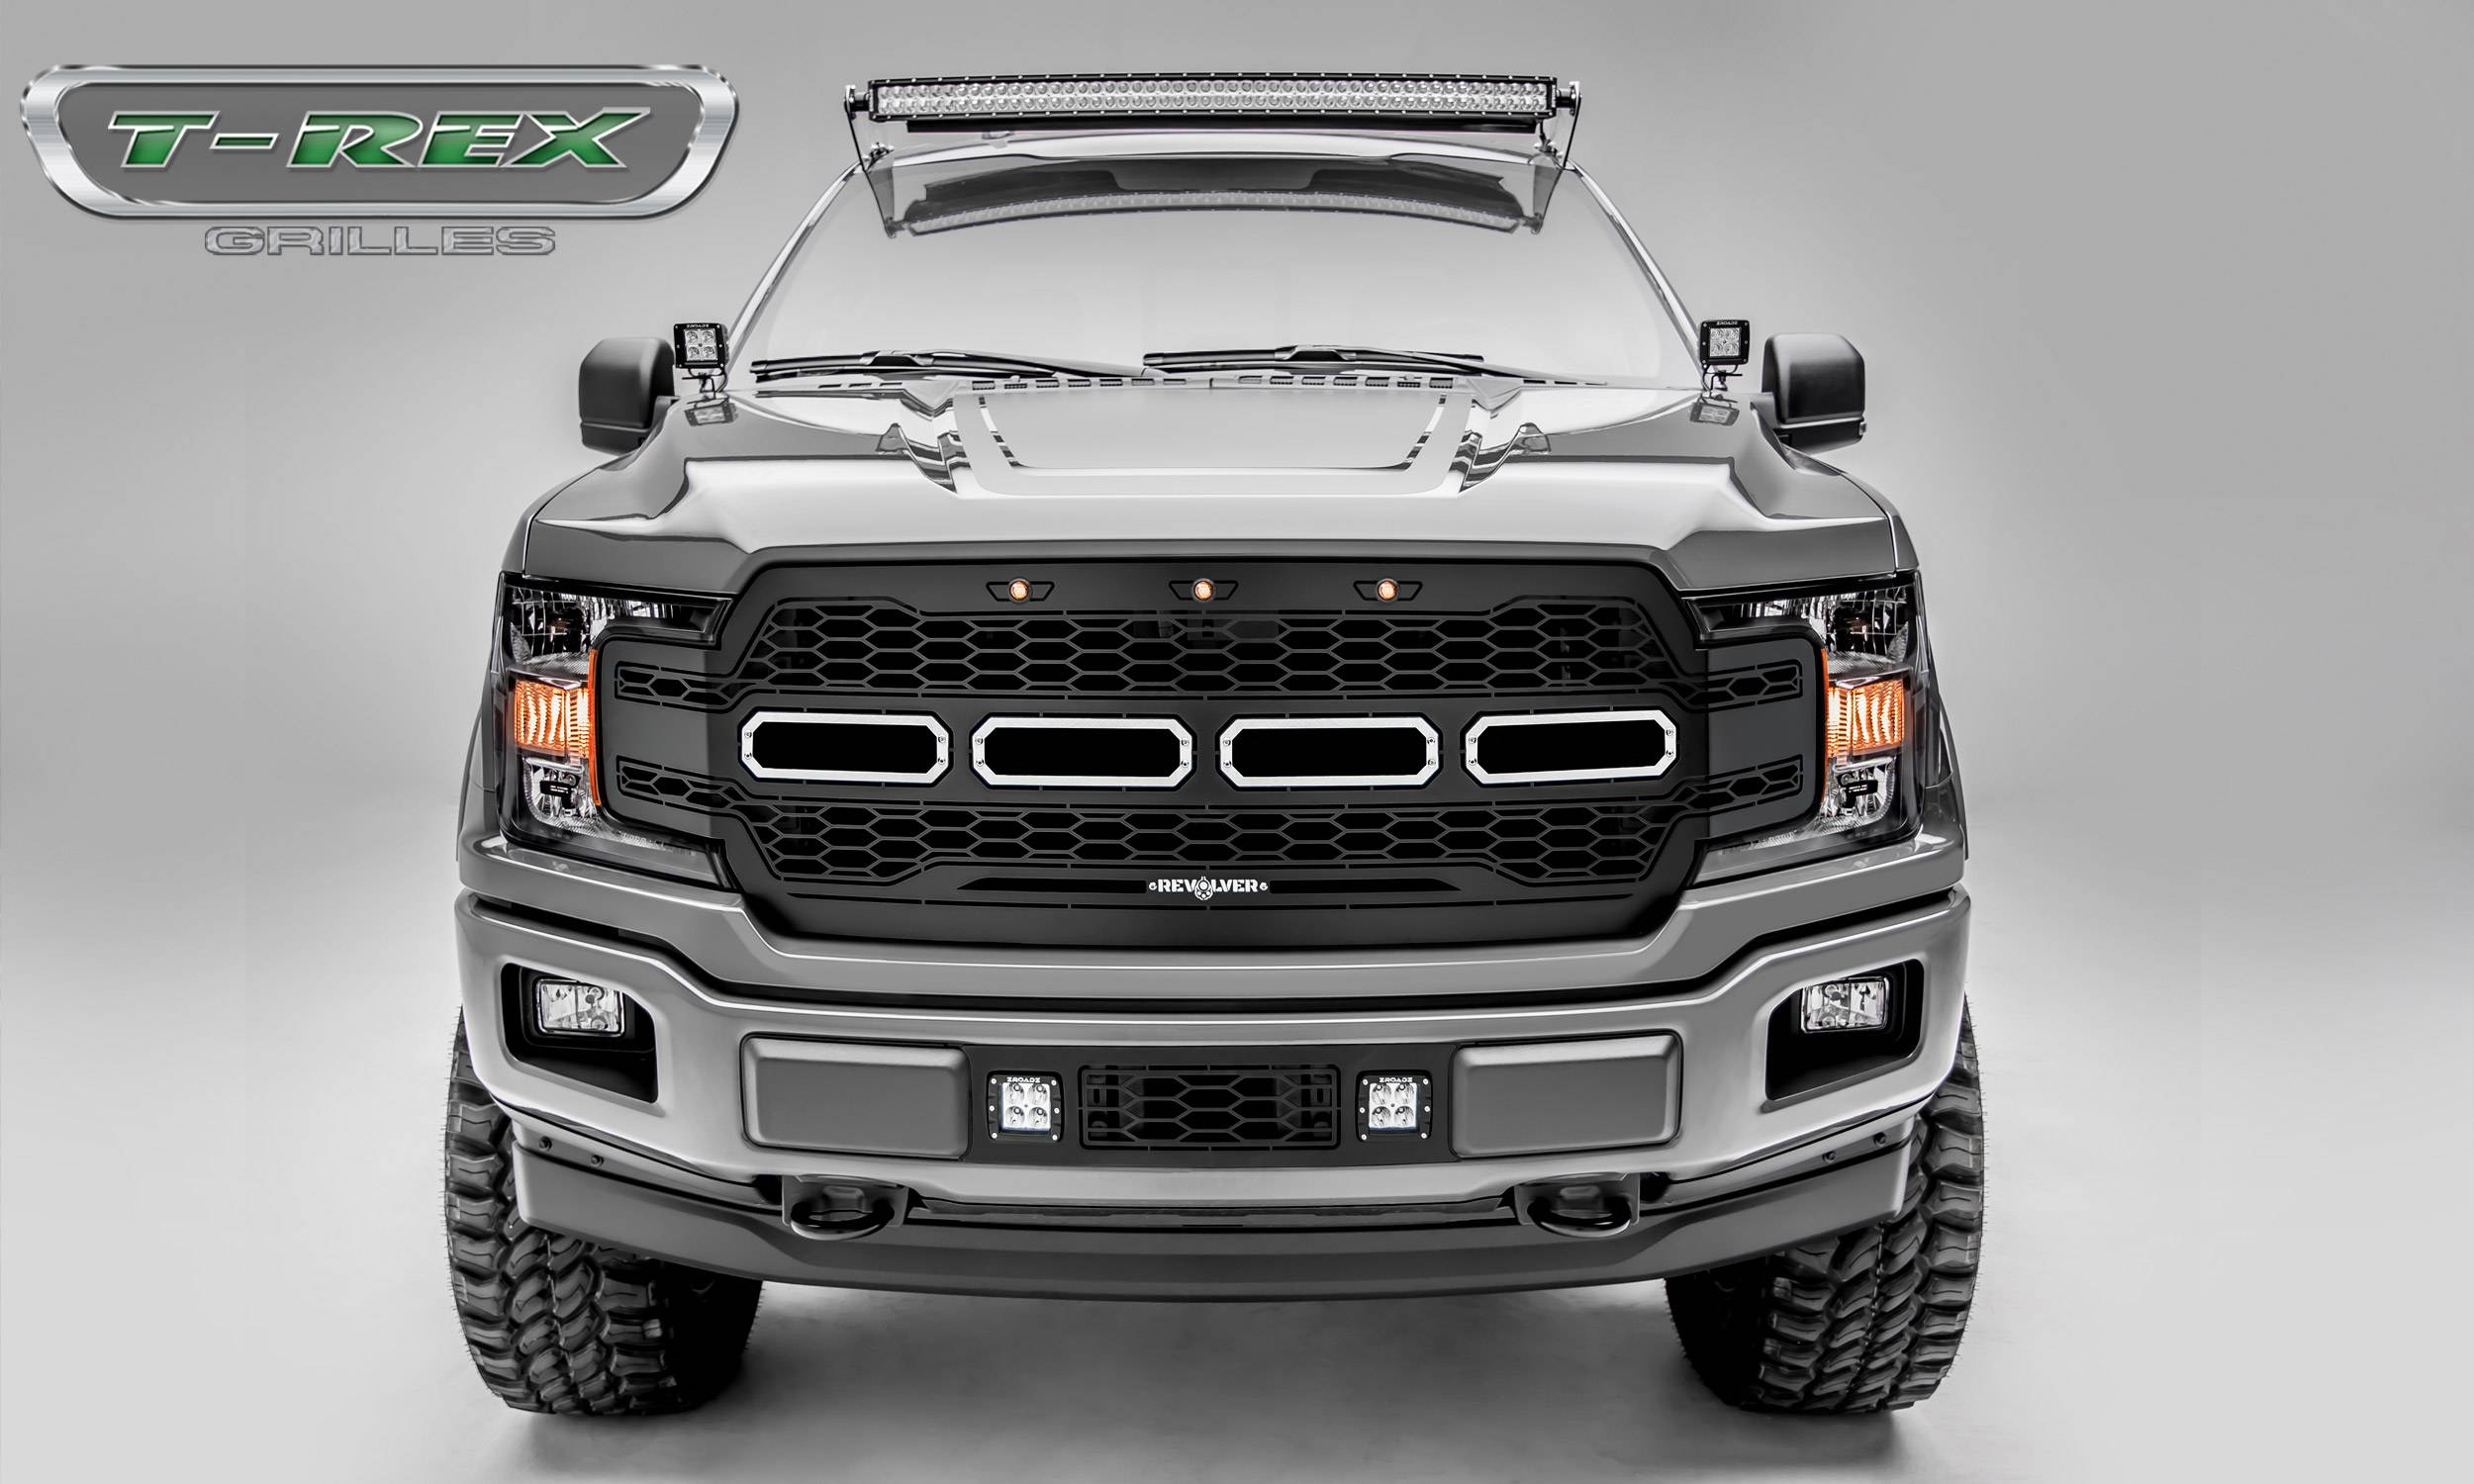 T-REX Grilles - T-REX Ford F-150 - Revolver Series - Main Grille Replacement w/ no LEDs - Laser Cut Steel Pattern - Black Powdercoat Finish - Pt # 6515851